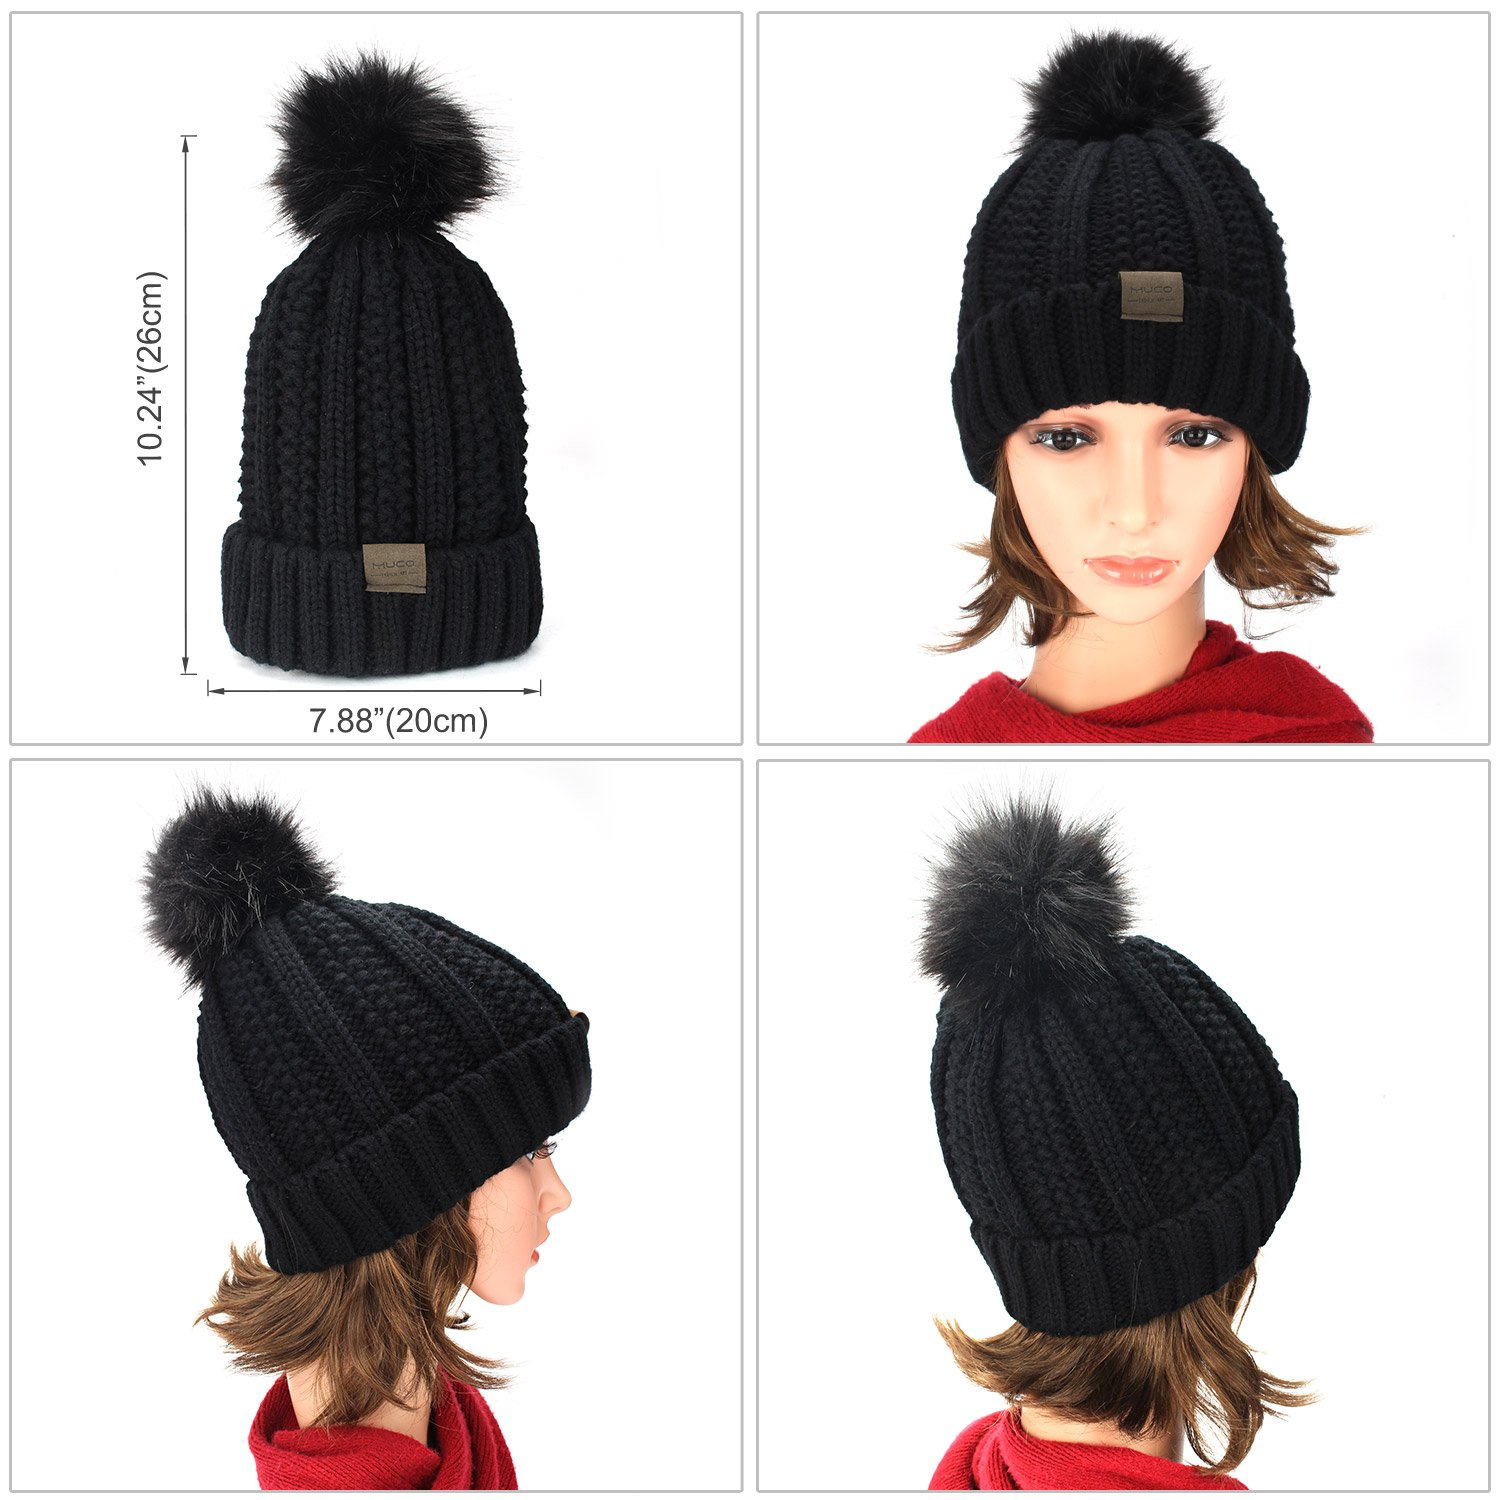 83a16bc81 MUCO Womens Beanie Winter Hat Knit Chunky Faux Fur Warm Linling Pom Poms  Hat Bobble Hat Ski Cap